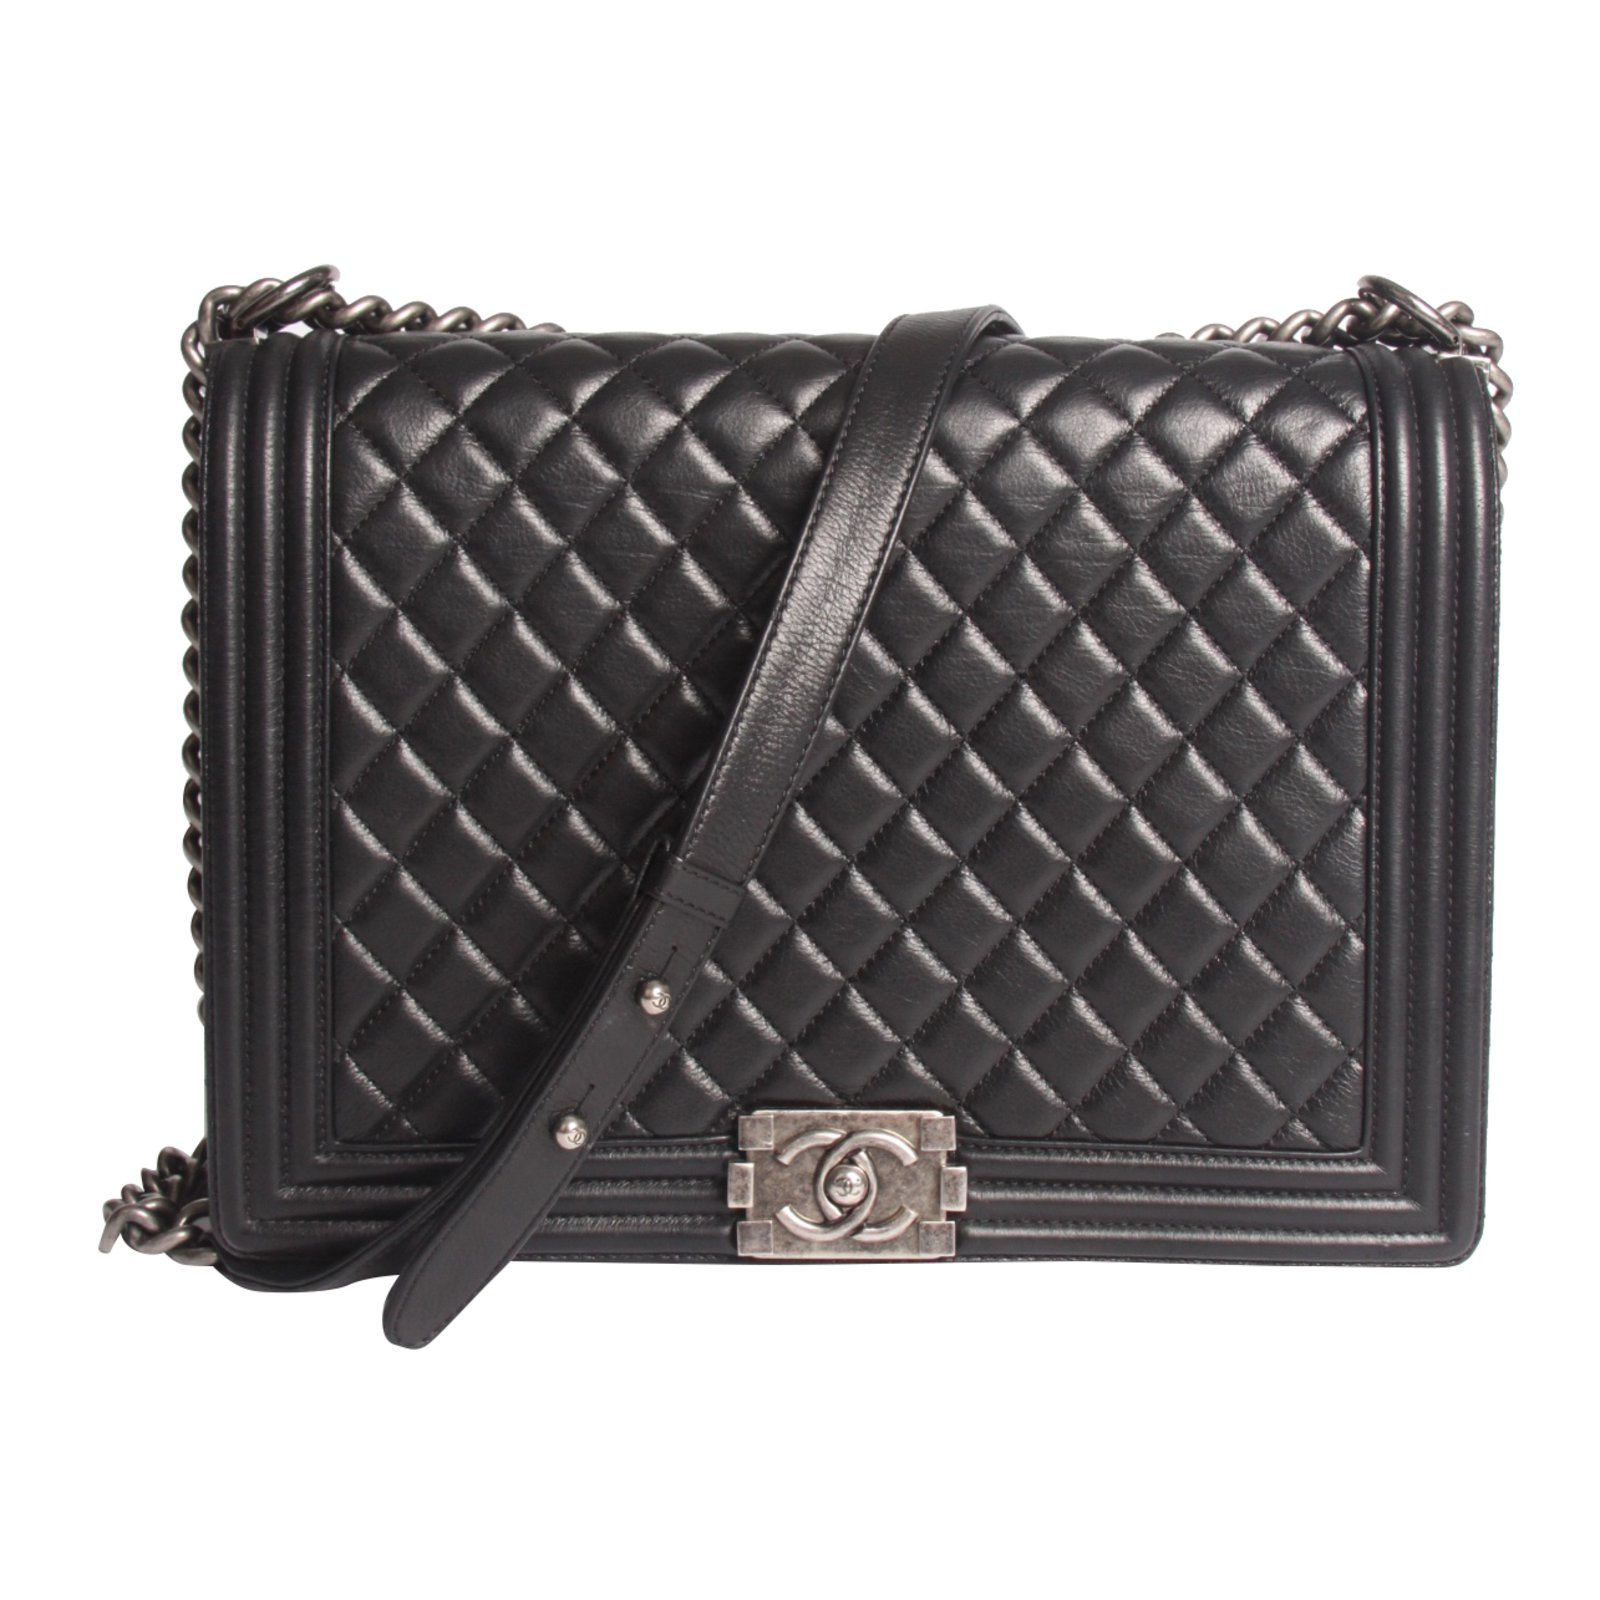 ec565eecda71 Chanel Chanel Boy Bag Large - black leather Handbags Leather Black ref.39495